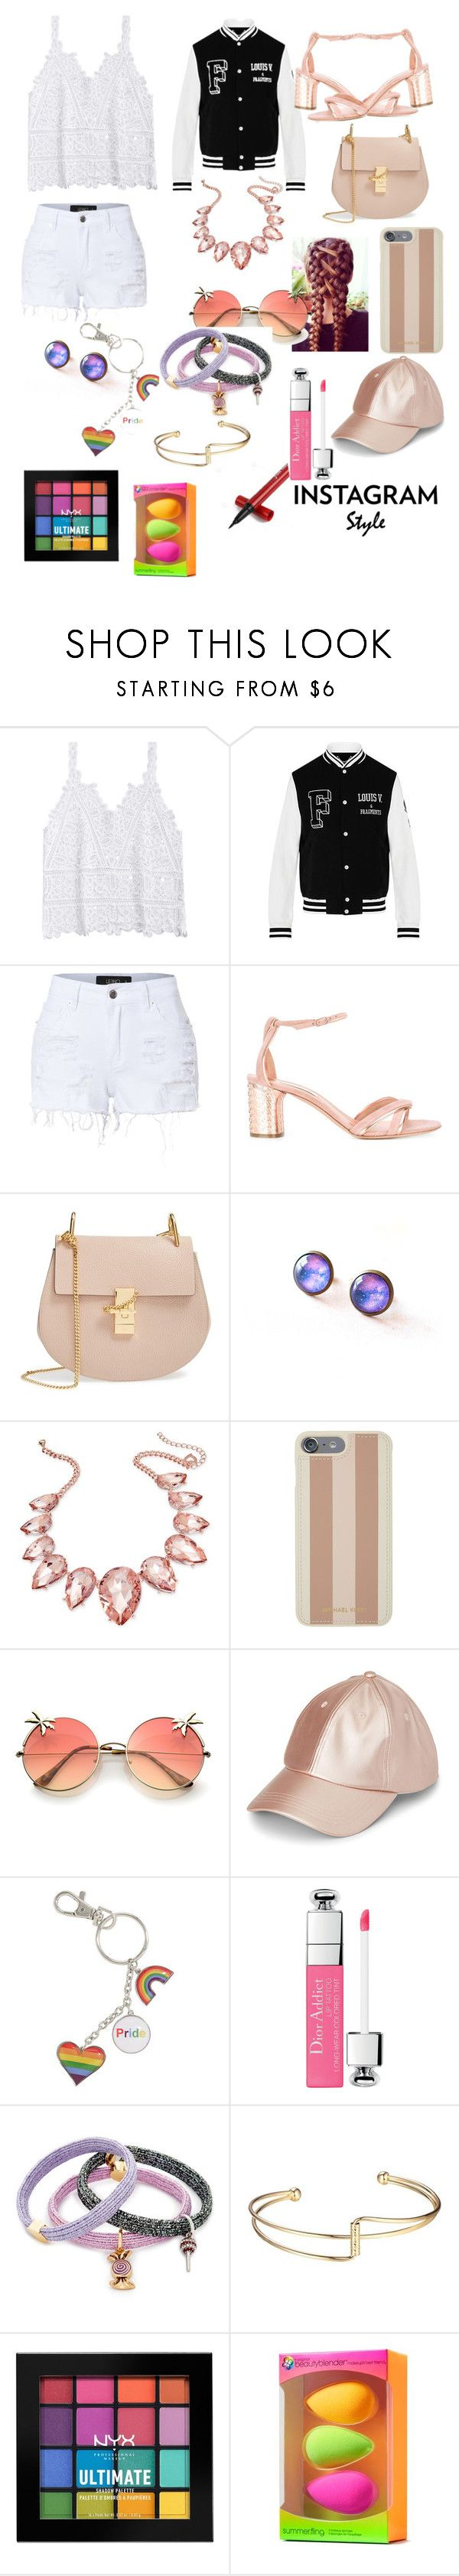 """Instagram"" by sarah-lol-chowdhury ❤ liked on Polyvore featuring LE3NO, Casadei, Chloé, Thalia Sodi, Michael Kors, Marc Jacobs, NYX, beautyblender, 60secondstyle and PVShareYourStyle"